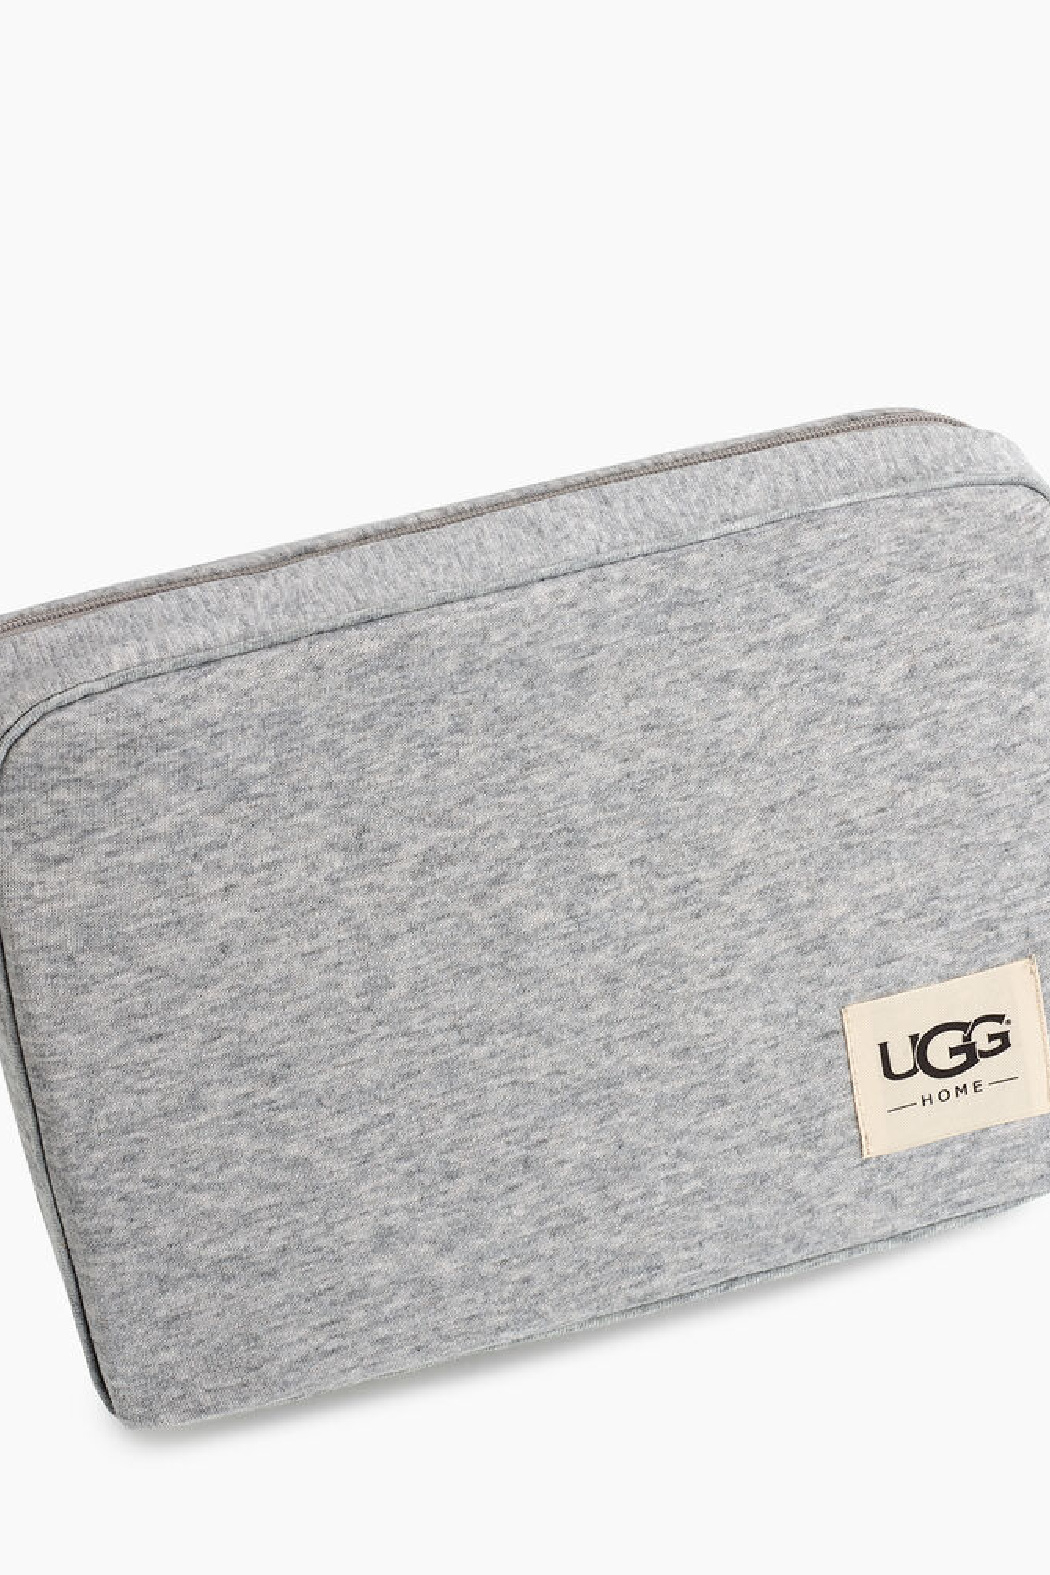 Ugg Duffield Travel Set Soft Pouch - Front Cropped Image